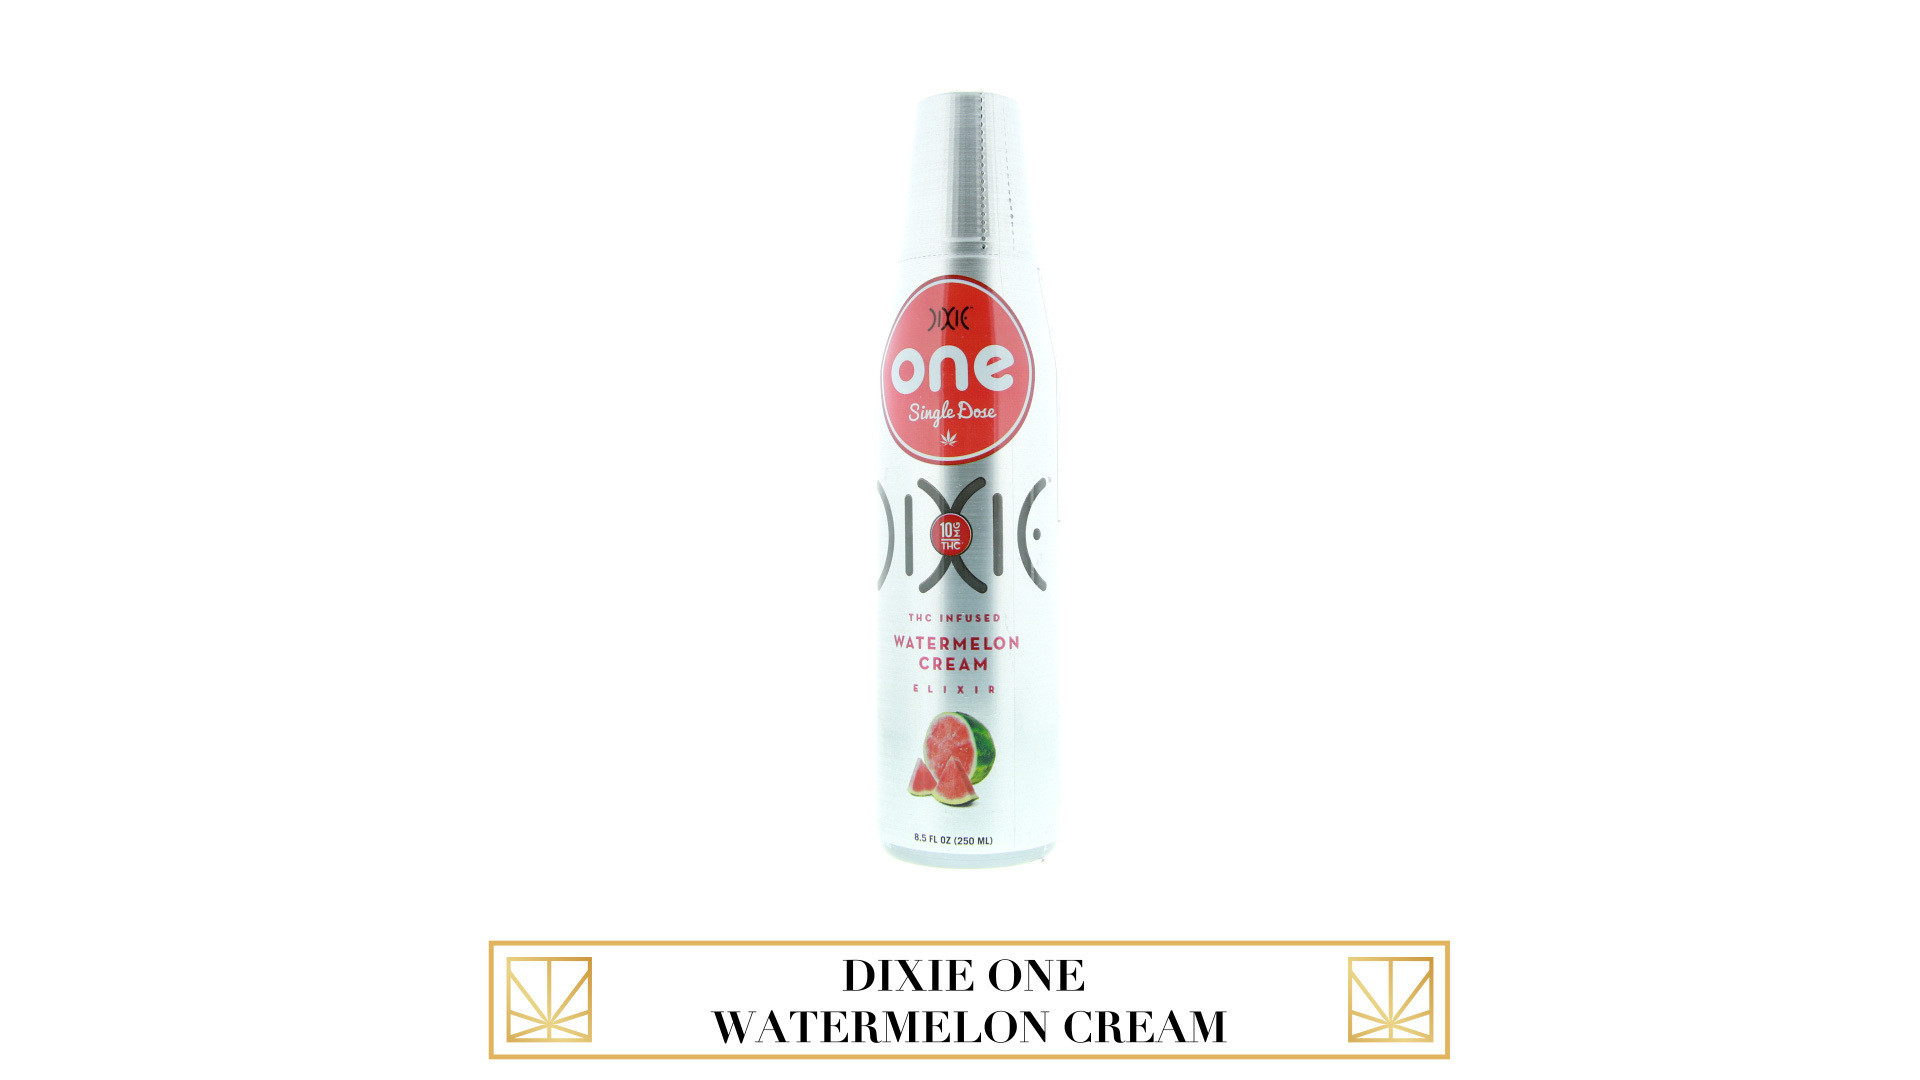 Dixie One Watermelon Cream